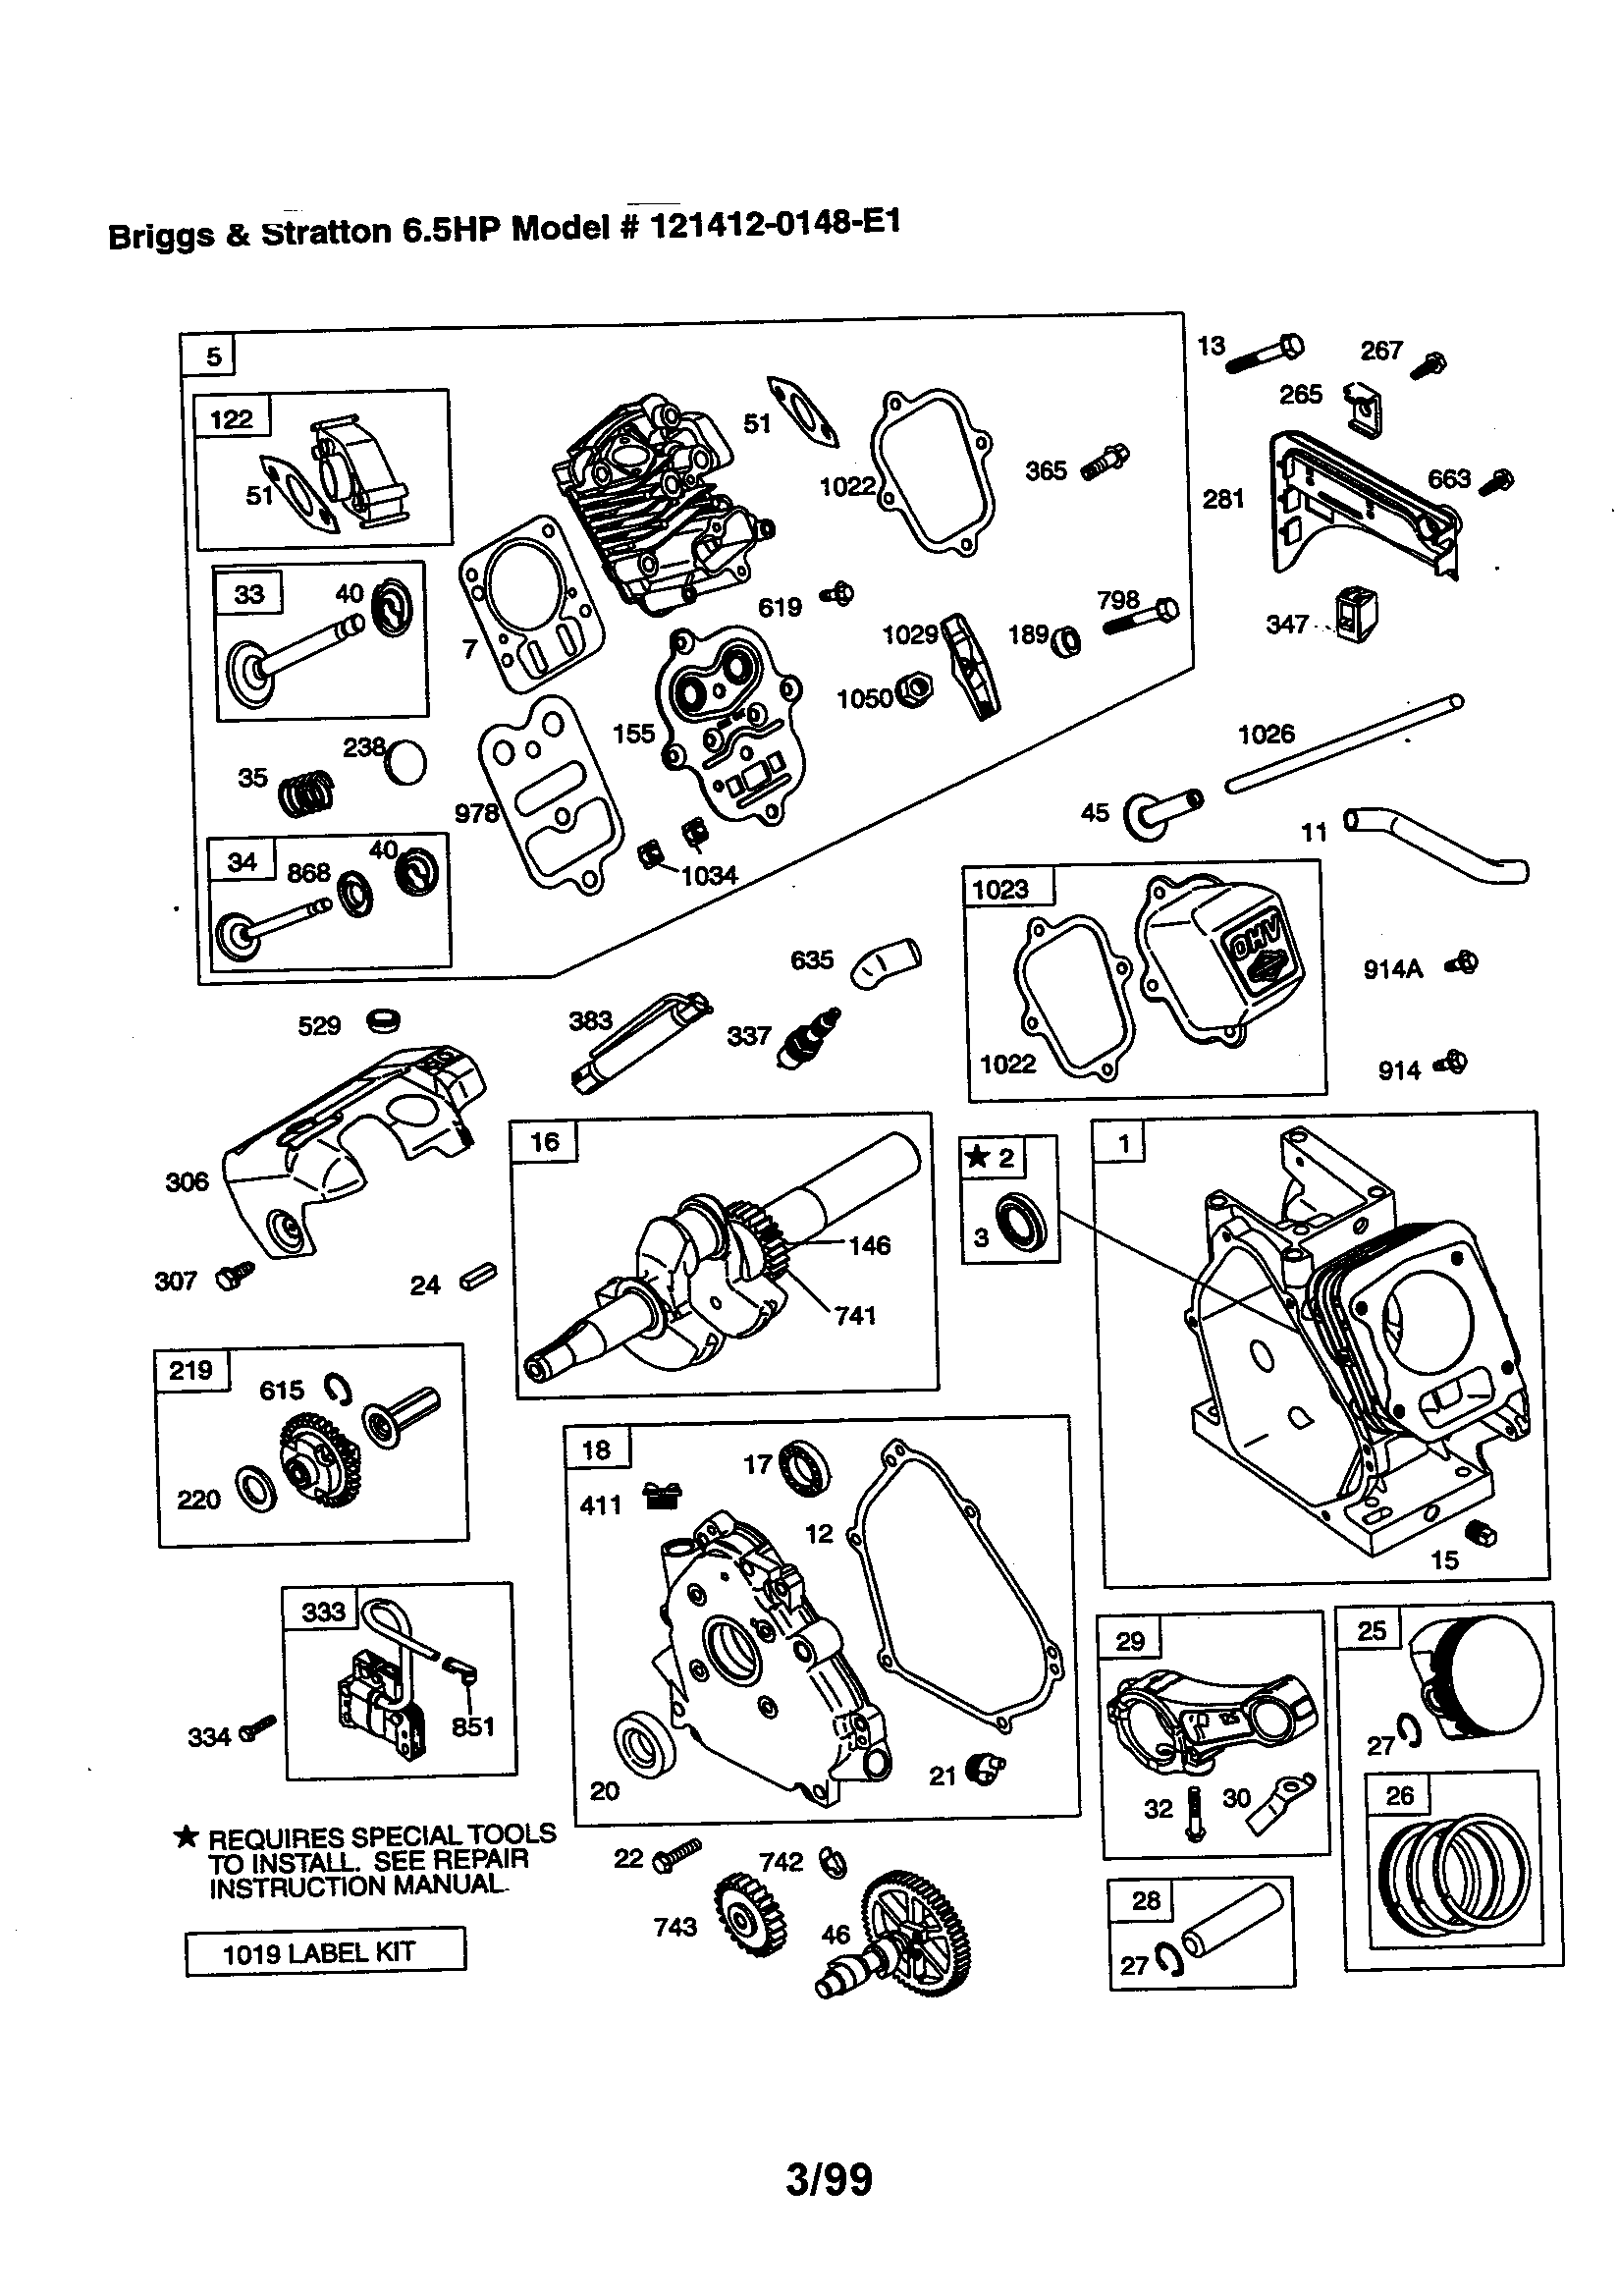 looking for briggs stratton model 121412 0148 e1 lawn garden engine repair replacement parts  [ 1648 x 2338 Pixel ]